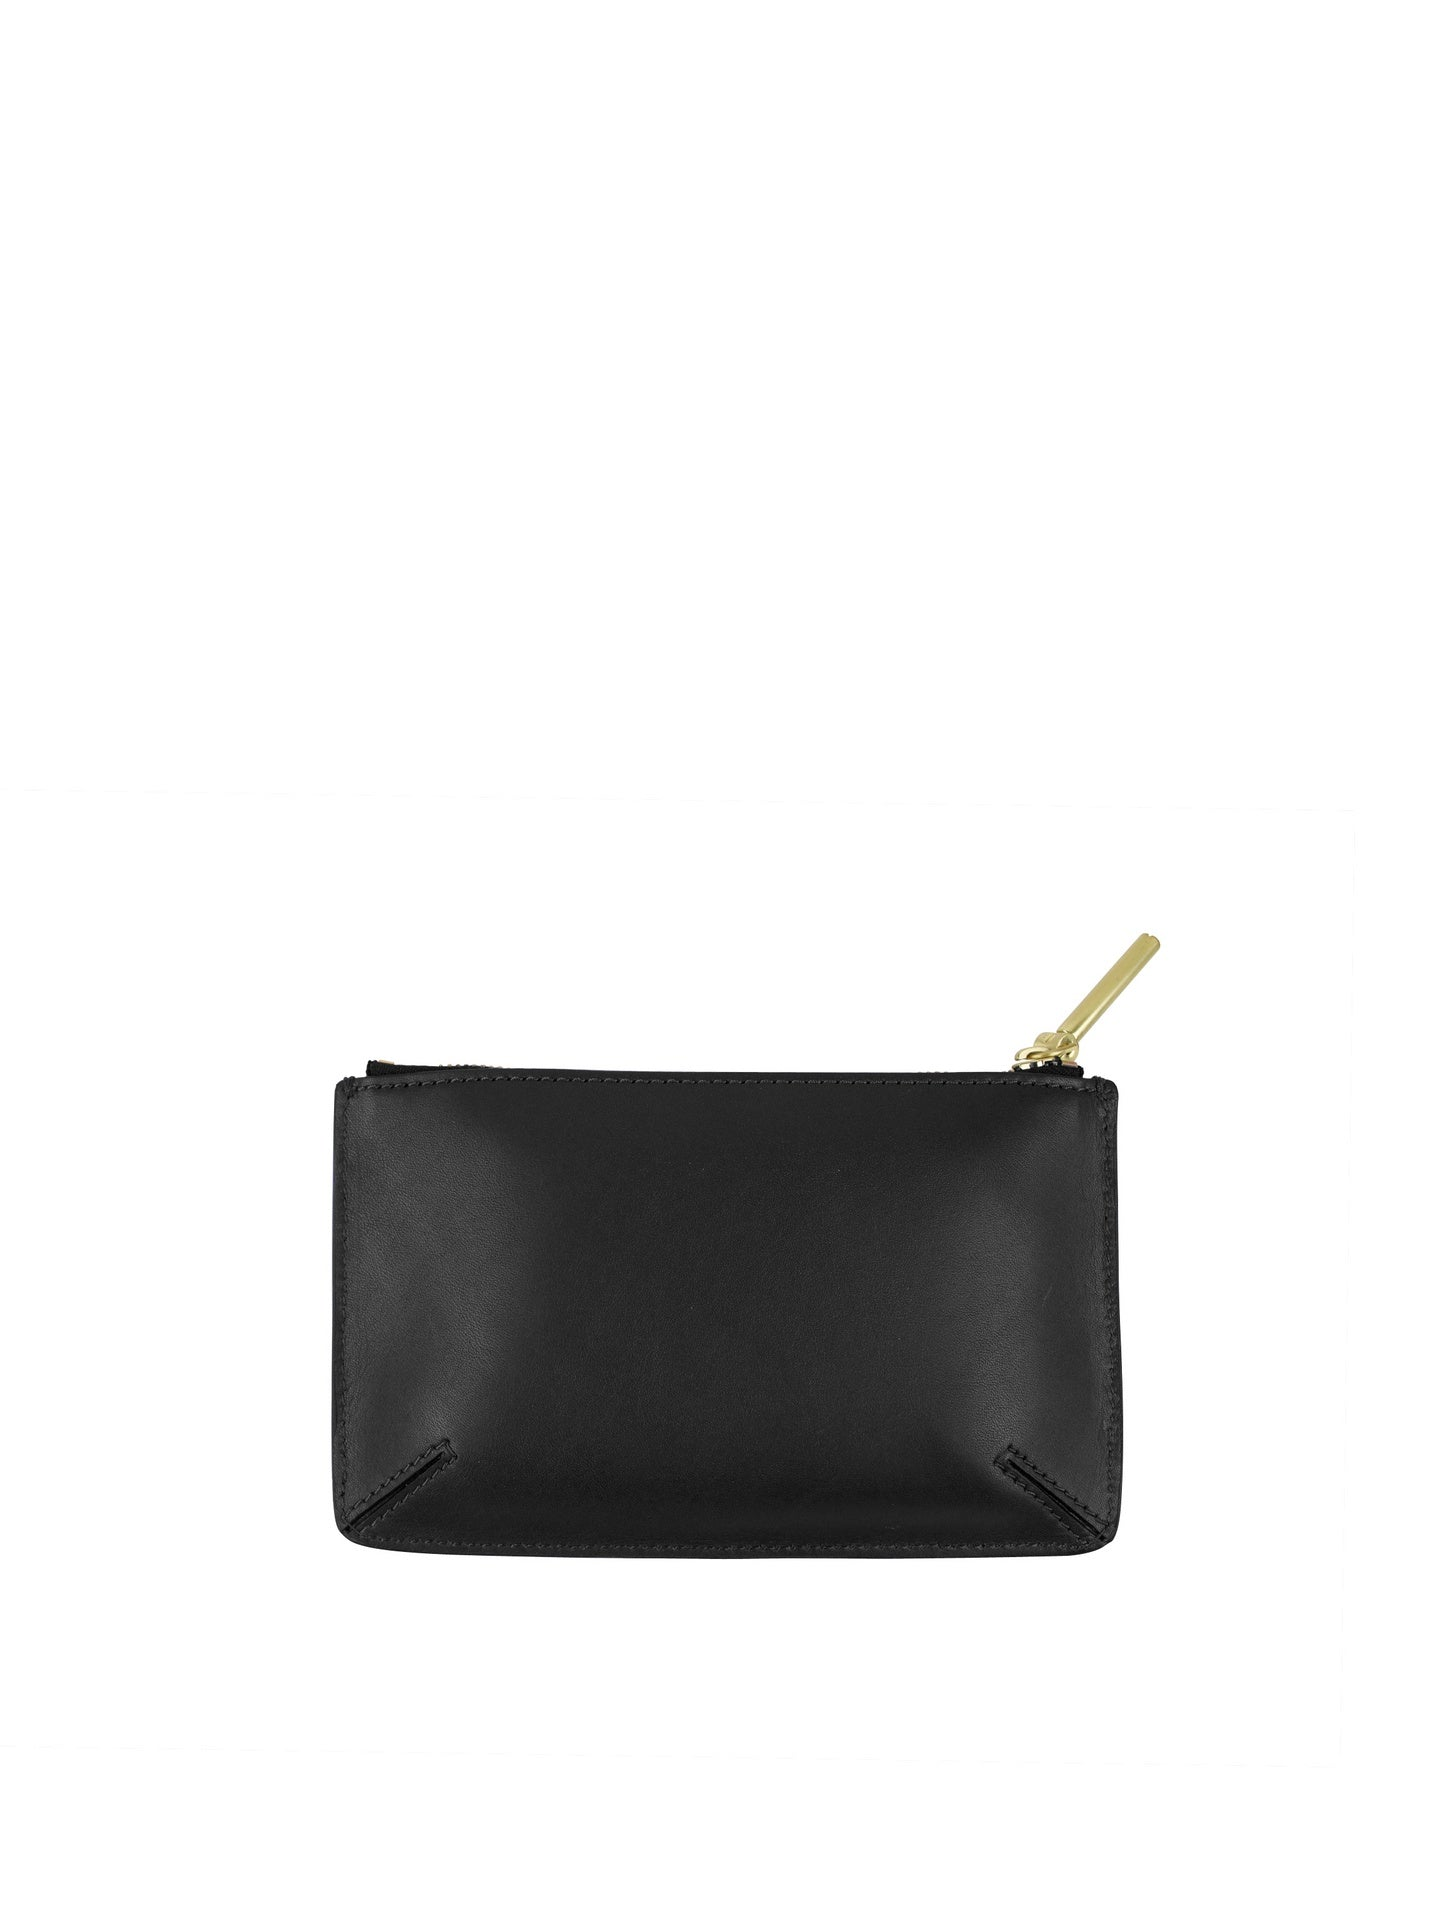 Flynn - Minty Zipper Pouch / Black